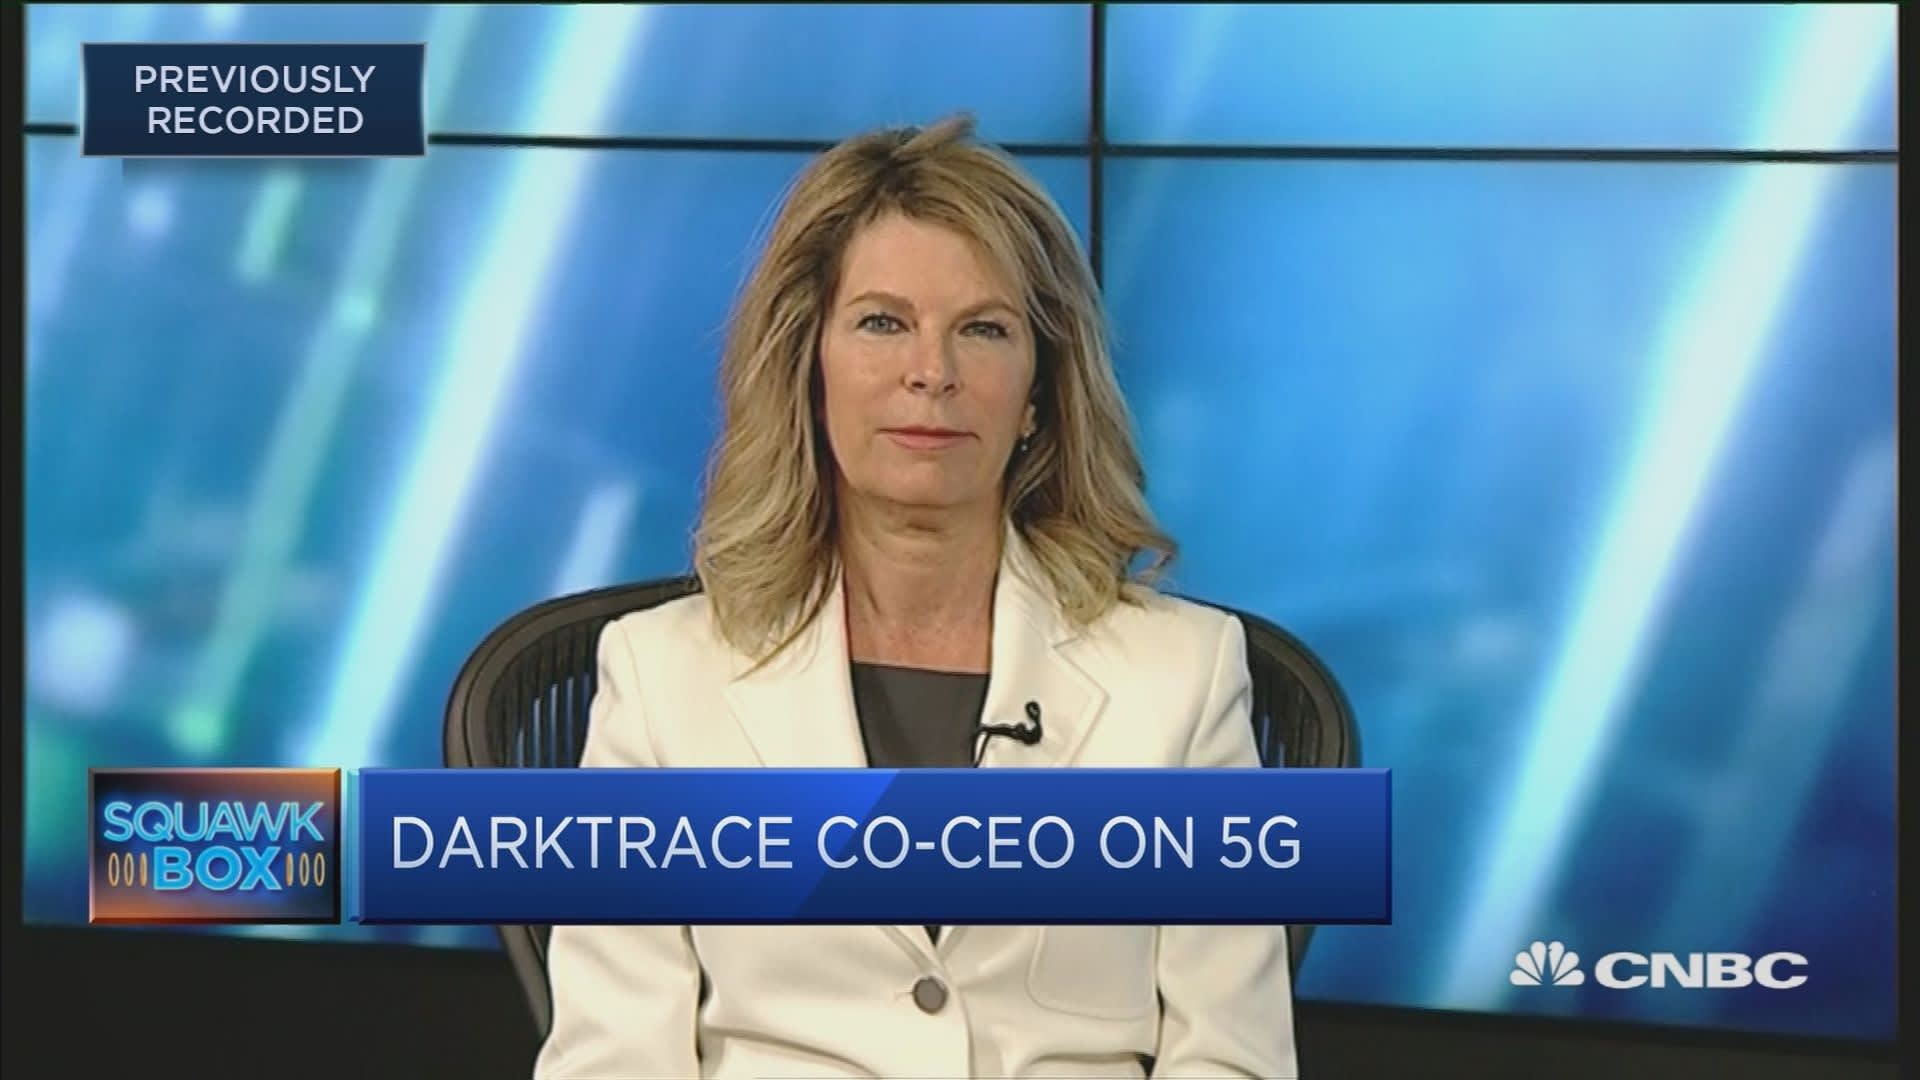 5G may increase cybersecurity risks in the near term: Darktrace